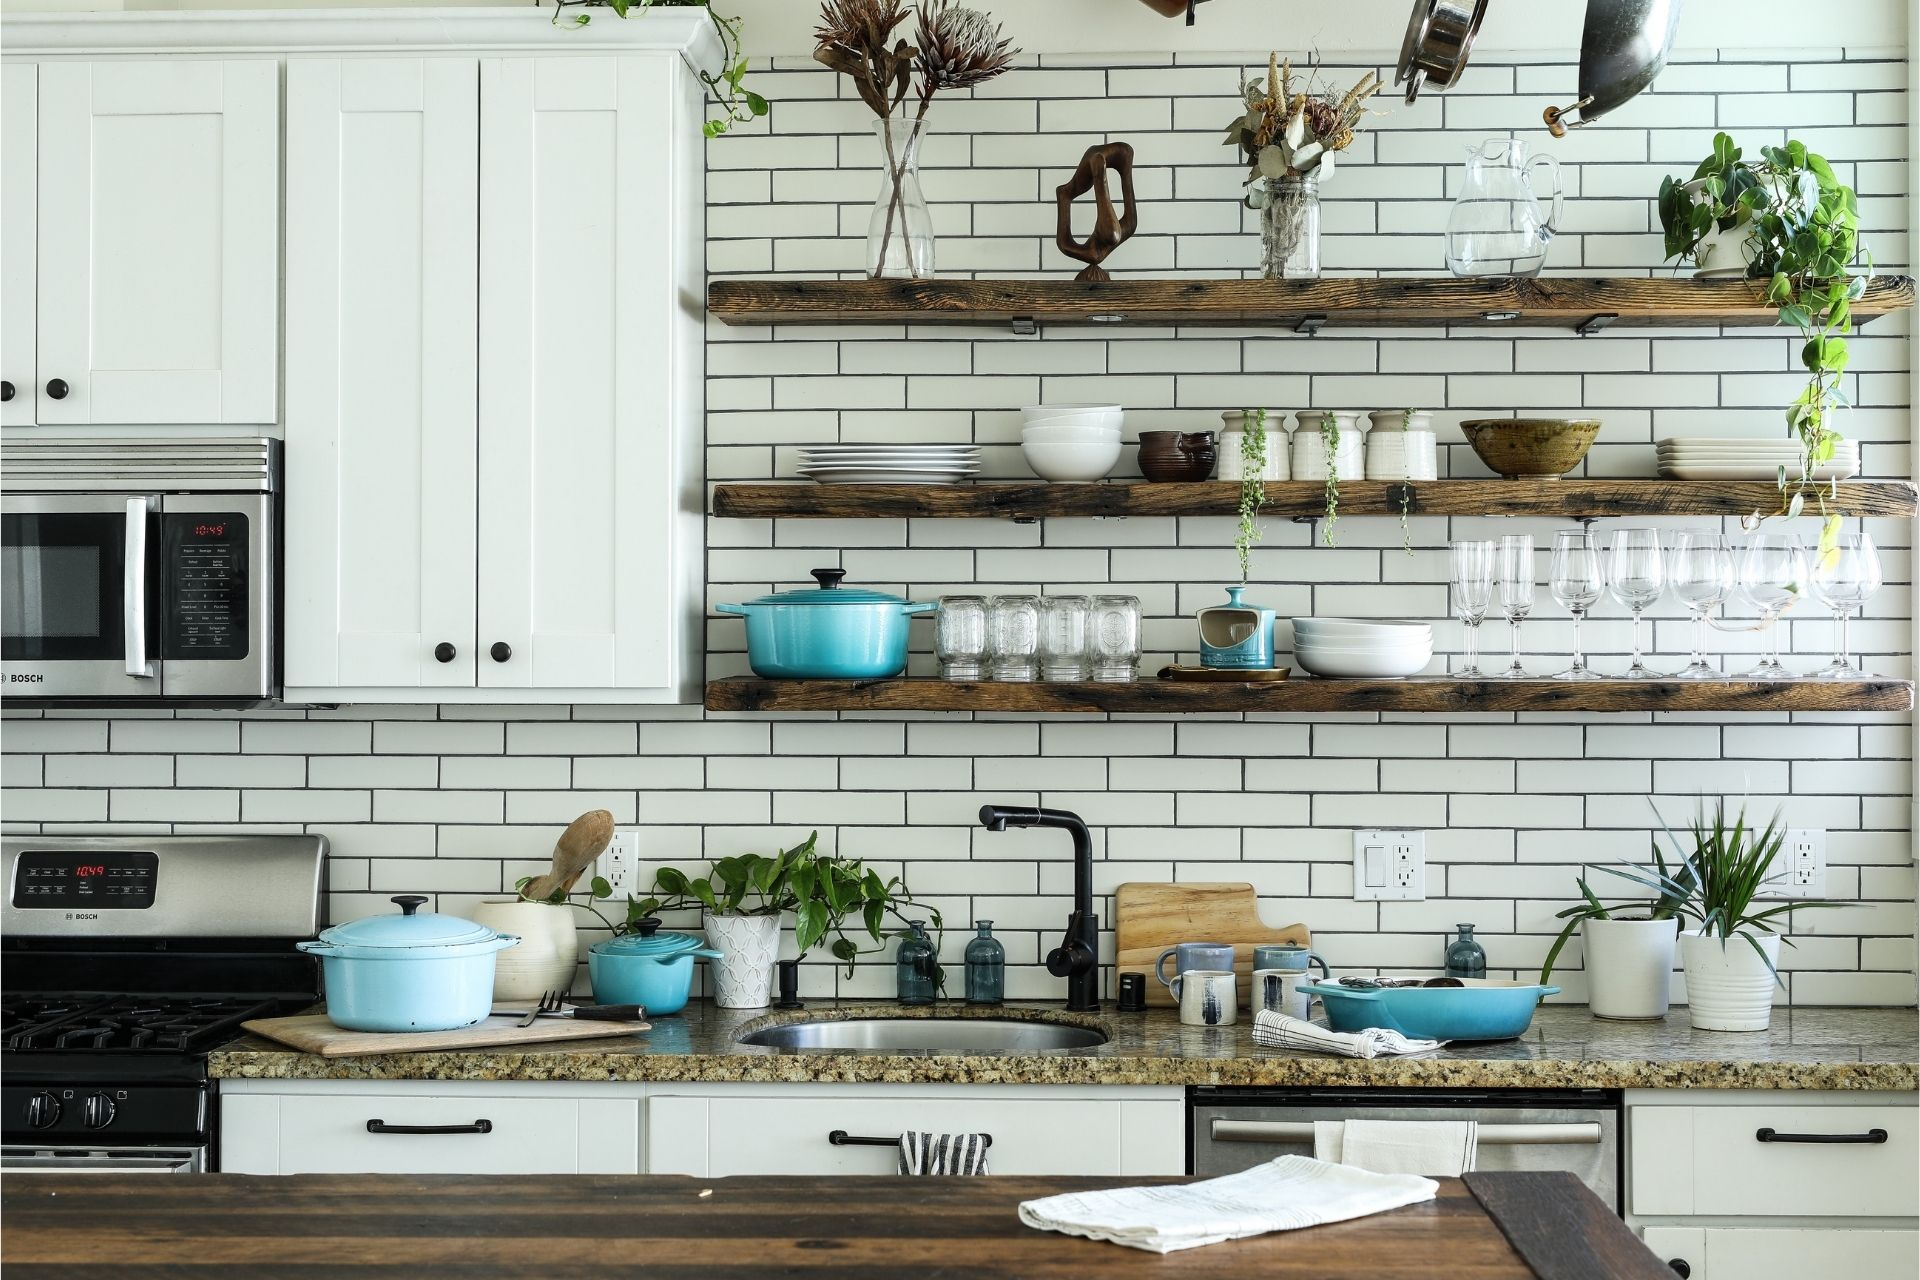 7-kitchen-makeovers-you-can-do-on-a-budget.jpg